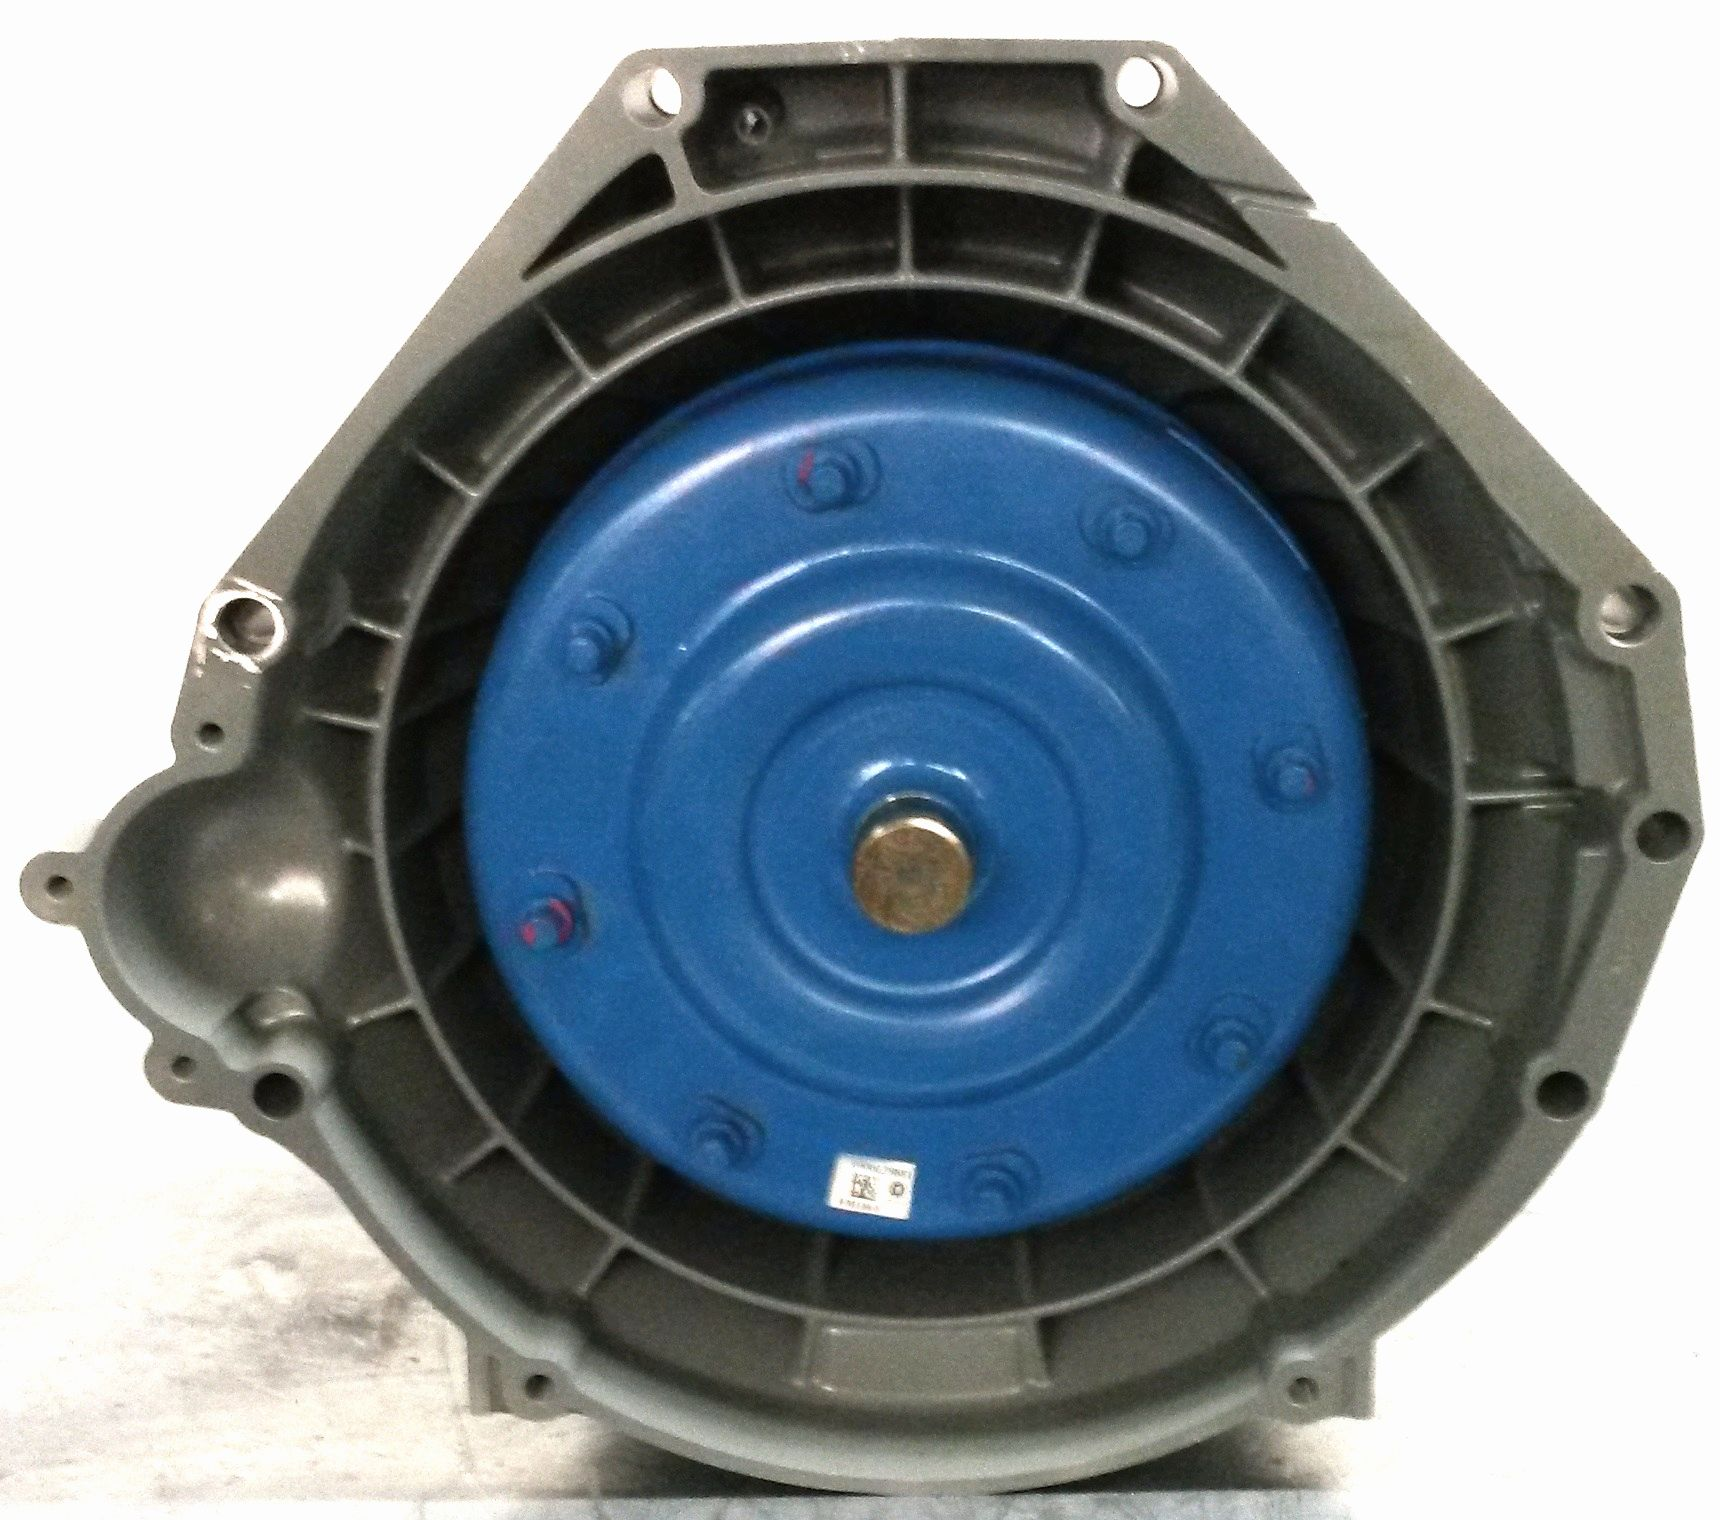 2005-2010 5R55S 4.0L 2WD TRANSMISSION REMANUFACTURED RWD FORD MUSTANG